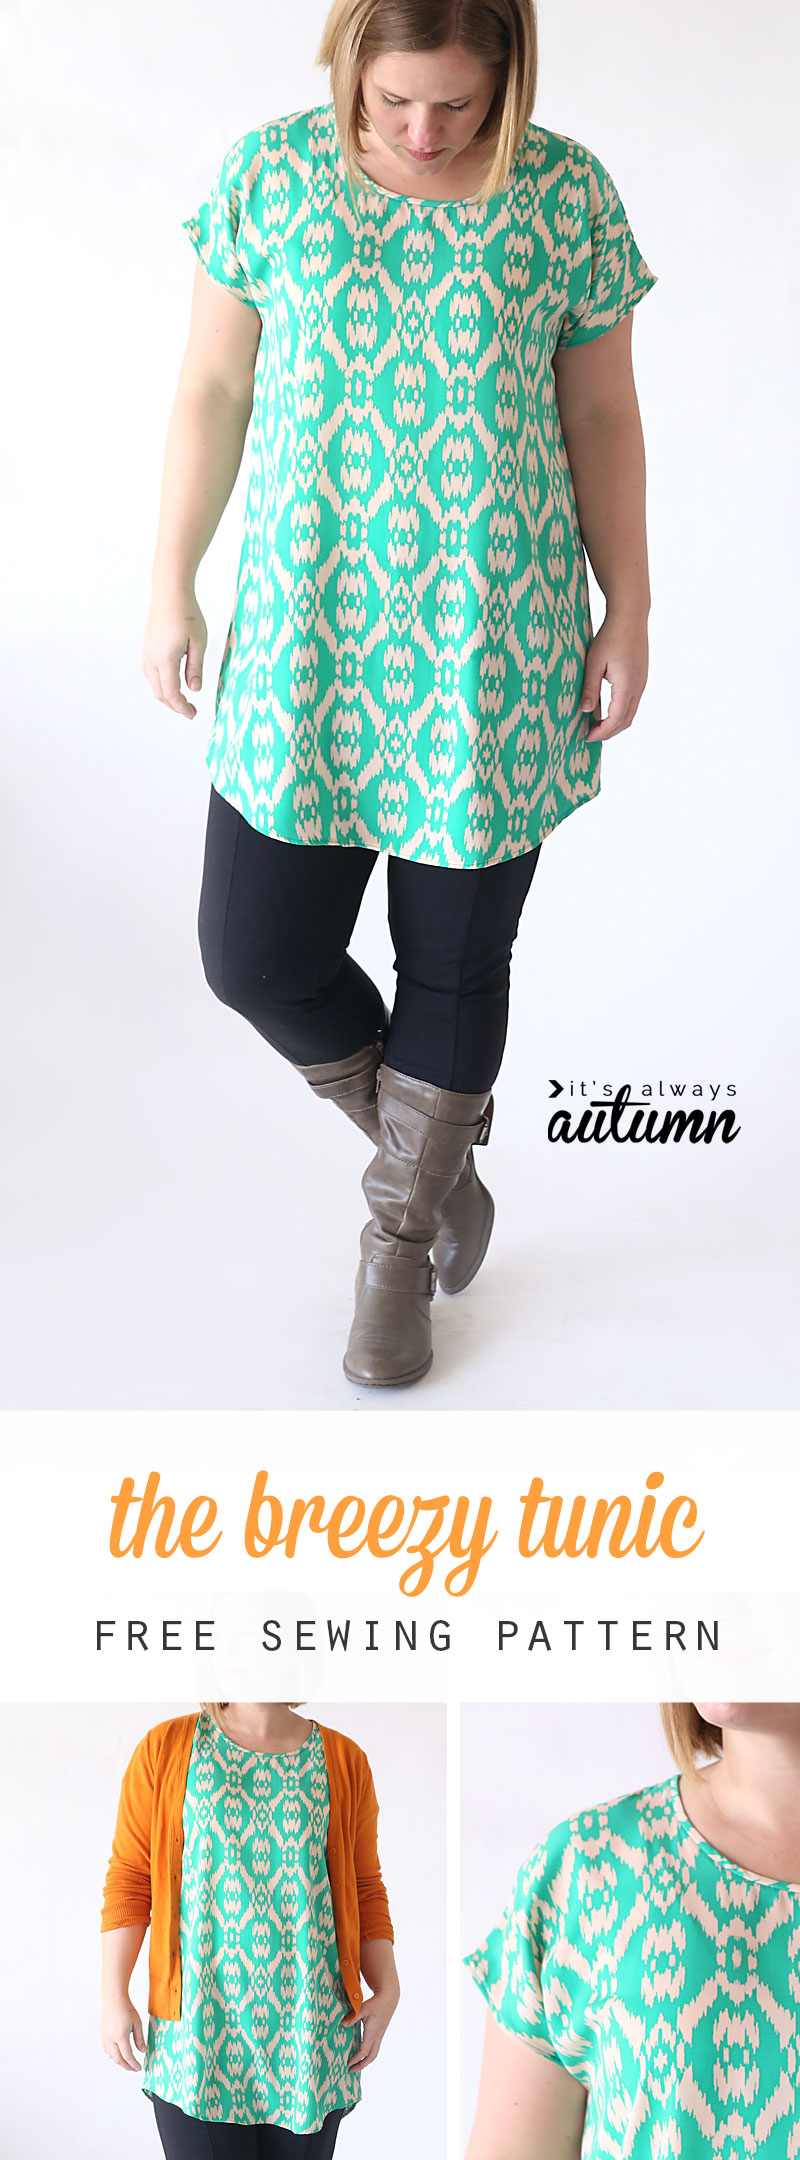 the breezy tee tunic from it's always autumn